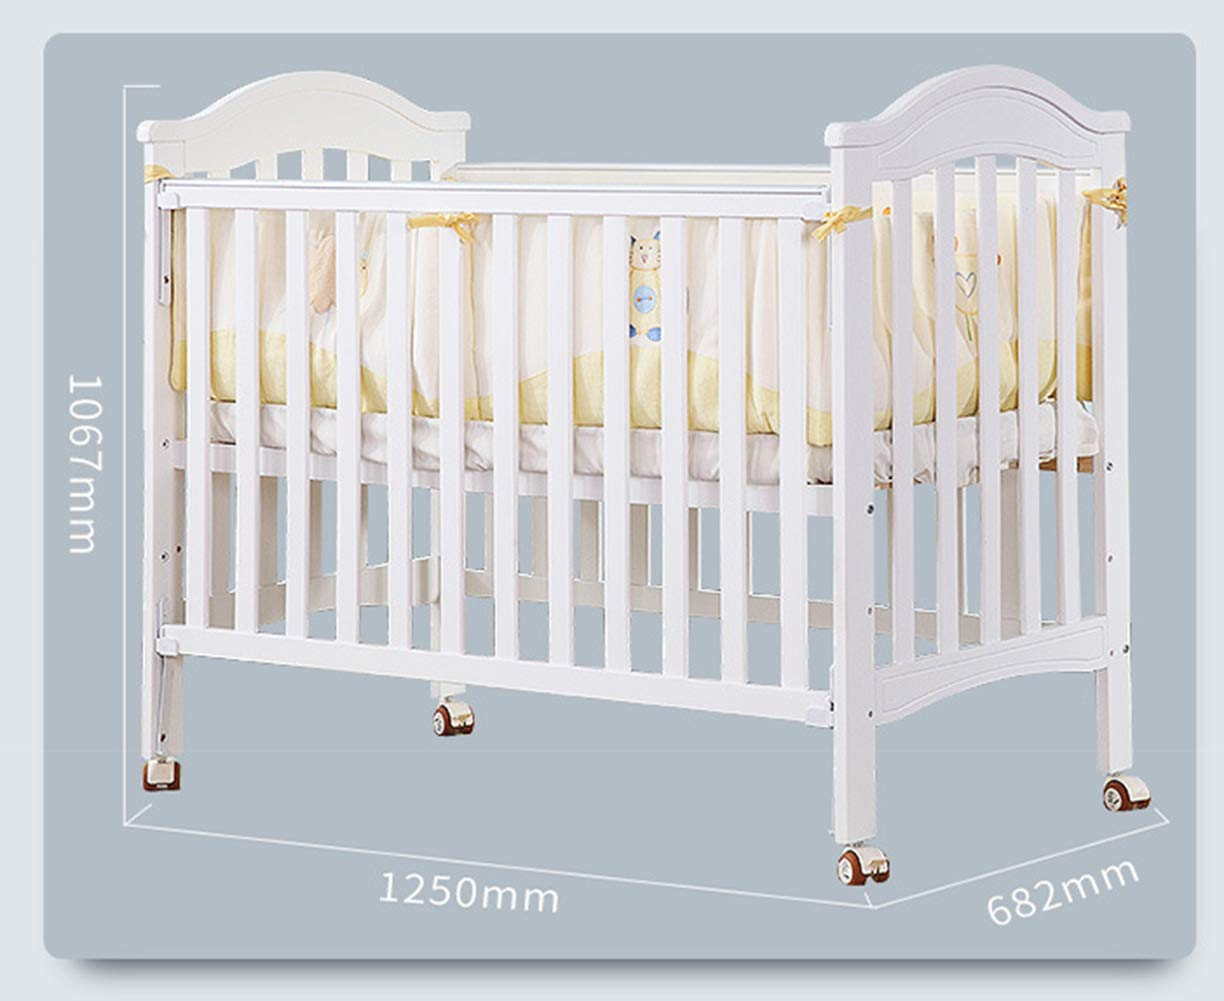 XUNMAIFLB Removable Solid Wood Baby Cot Bed, Multifunctional, Baby Bed/children's Bed/Game Bed with Roller (inner Diameter: 1200 * 600mm) Safety XUNMAIFLB Can be spliced with the big bed, convenient for the mother to take care of the baby's full water bed board, real material, no blister, no insects, tight structure, texture and tough and delicate. Rugged and durable: the wood is durable, oil-free, non-discoloring, and does not crack, increasing the life of the bed. Strong load-bearing solid wood bed: widened thick row skeleton + moon boat coconut palm mattress static load capacity 50kg. 7